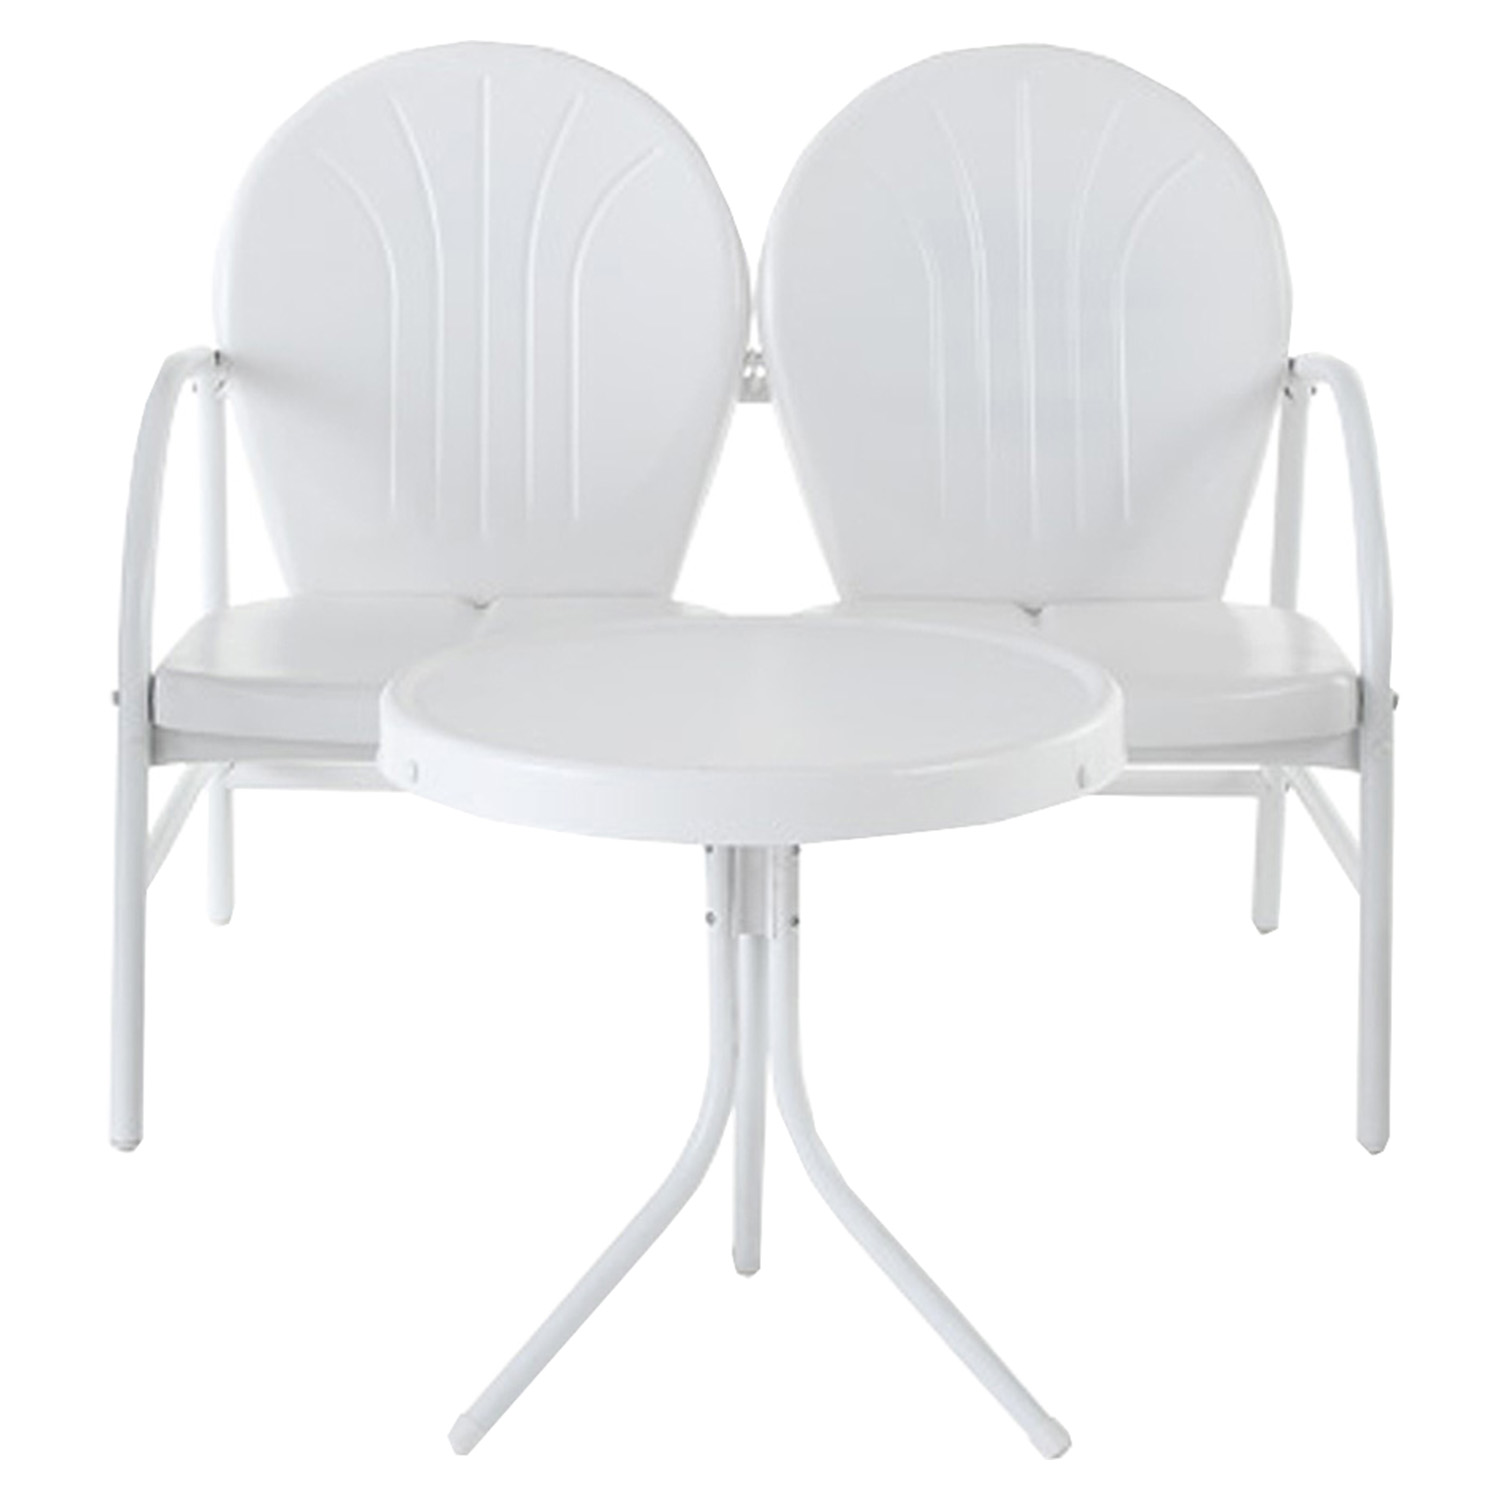 Griffith 2 Piece Conversation Seating Set - White - CROS-KO10006WH